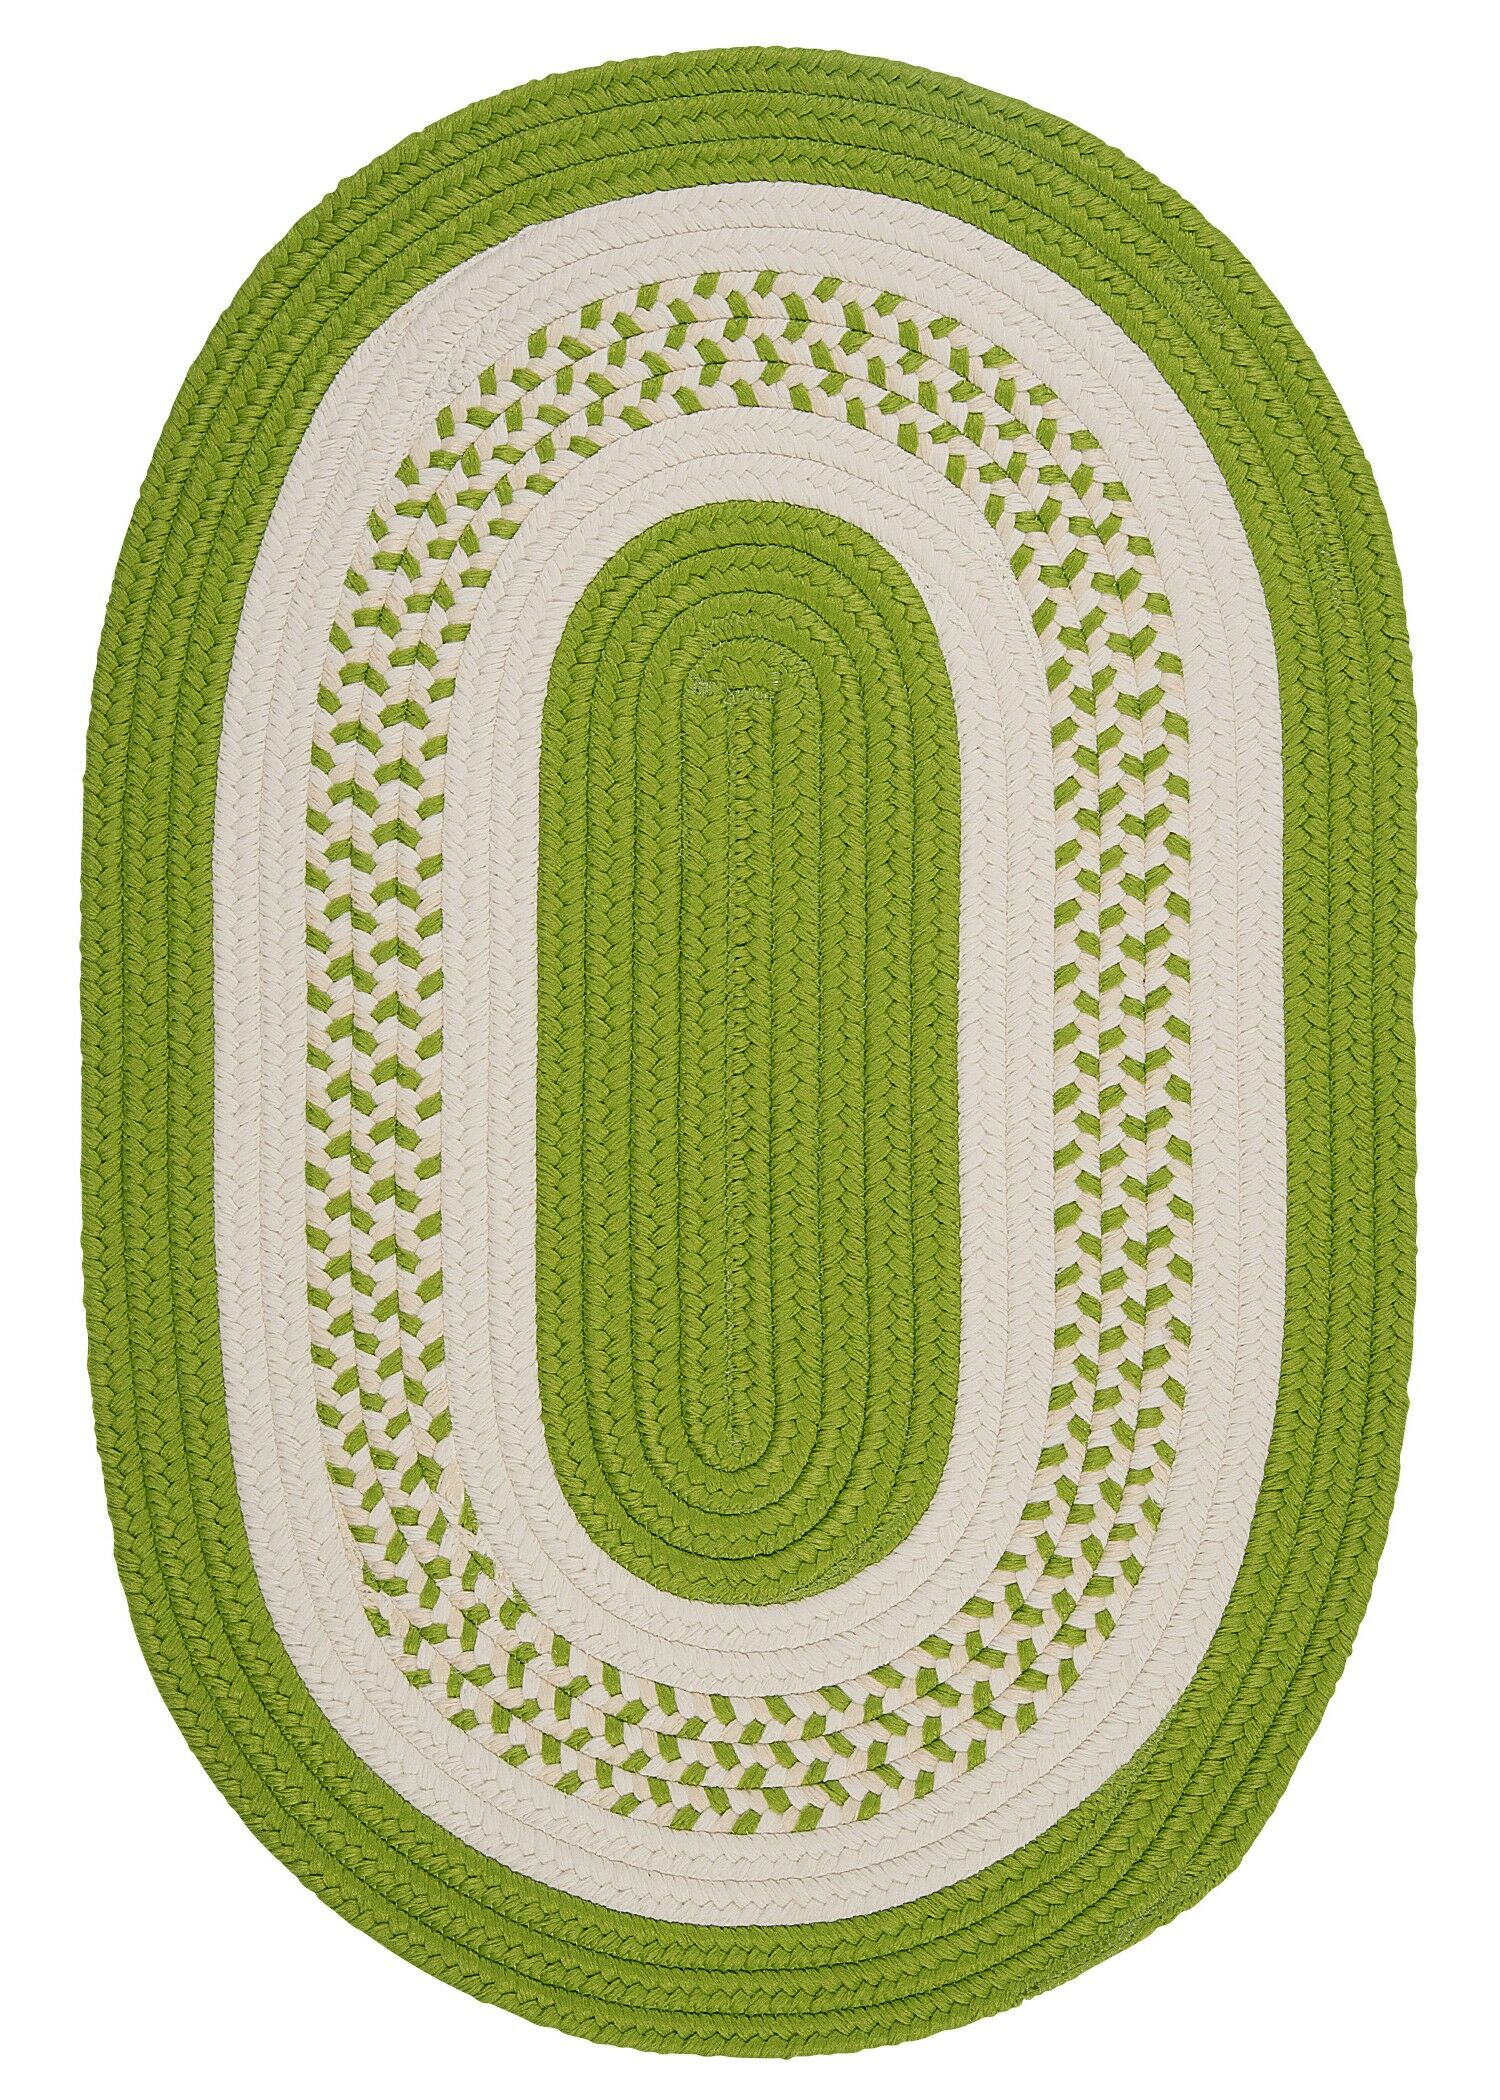 Rockport Bright Green Indoor/Outdoor Rug Rug Size: Round 12'